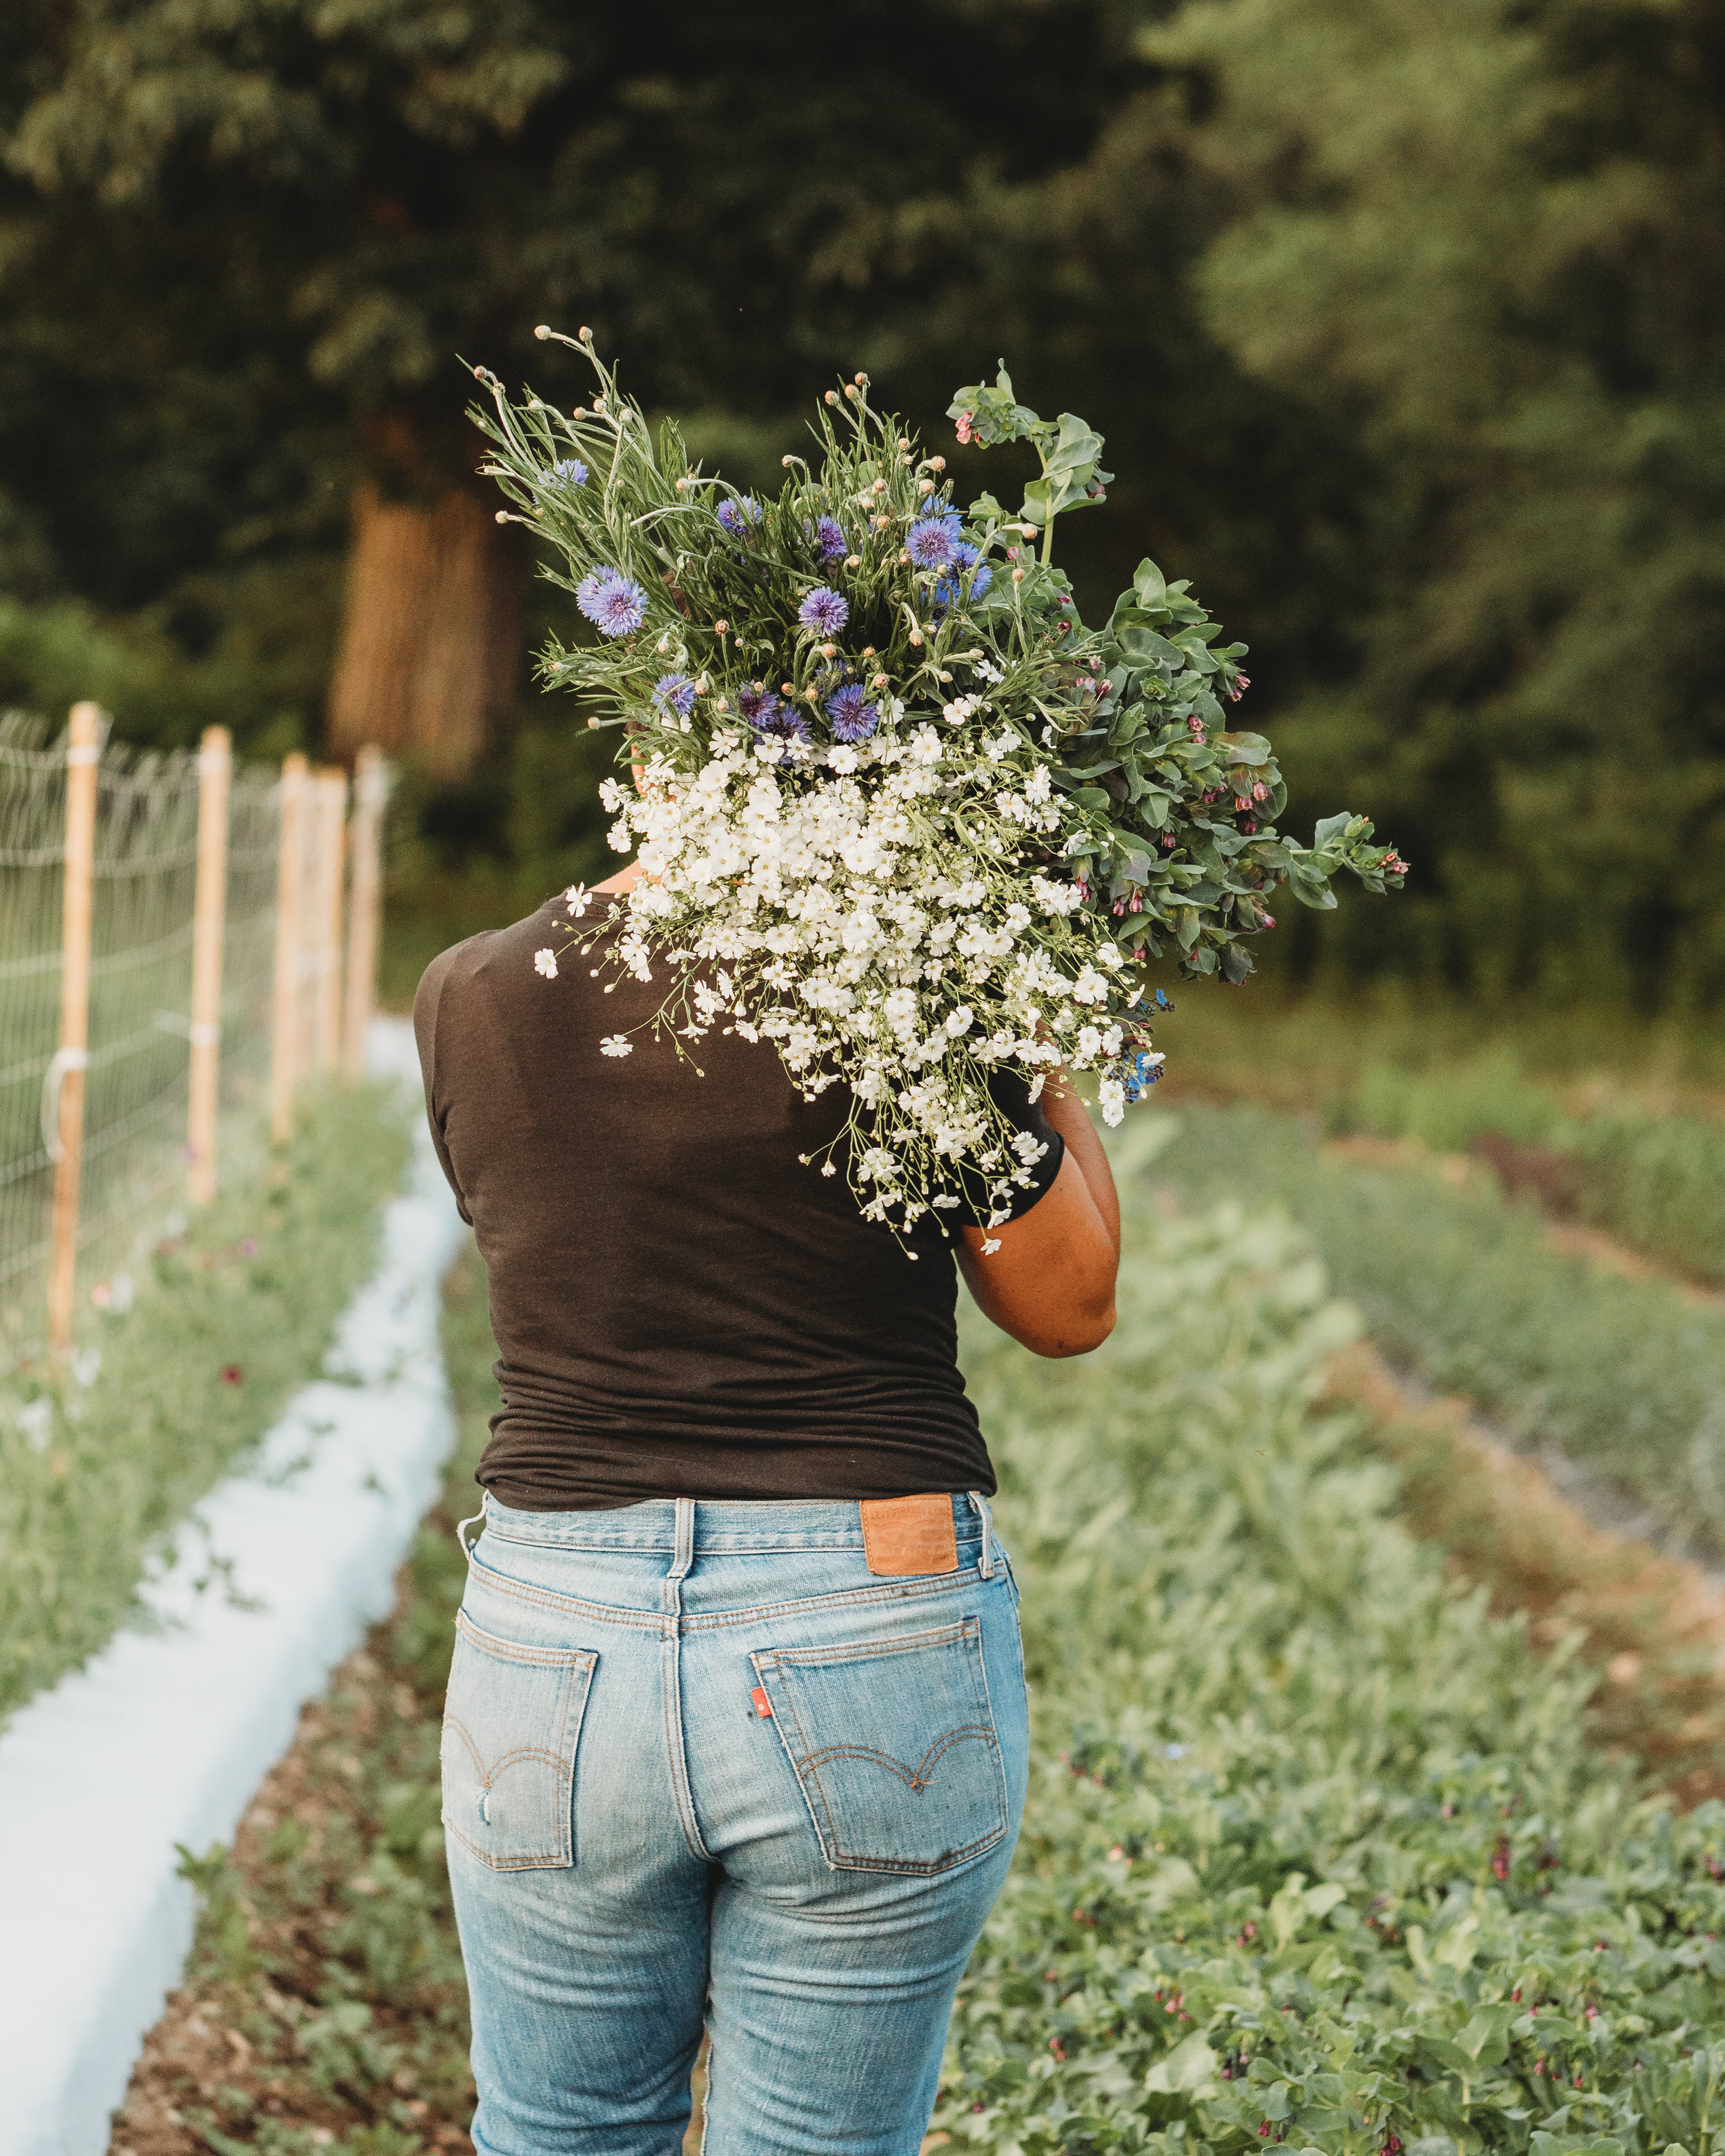 Mel Hardy, flower farmer, carrying an armload of flowers from her first season's crop. Concord, Massachusetts small business branding photography.